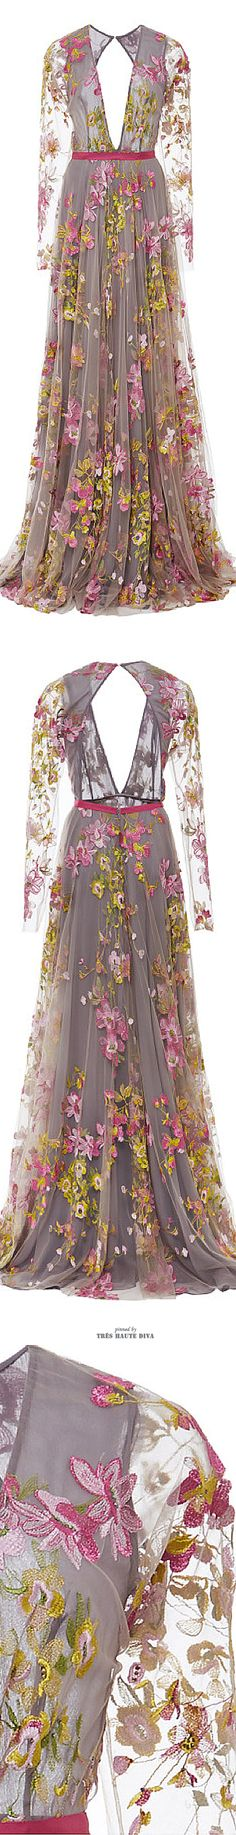 This dress would make the perfected bridesmaid dress. Naeem Khan Floral Embroidered Long Sleeve Gown ♔ SS 2015 jaglady